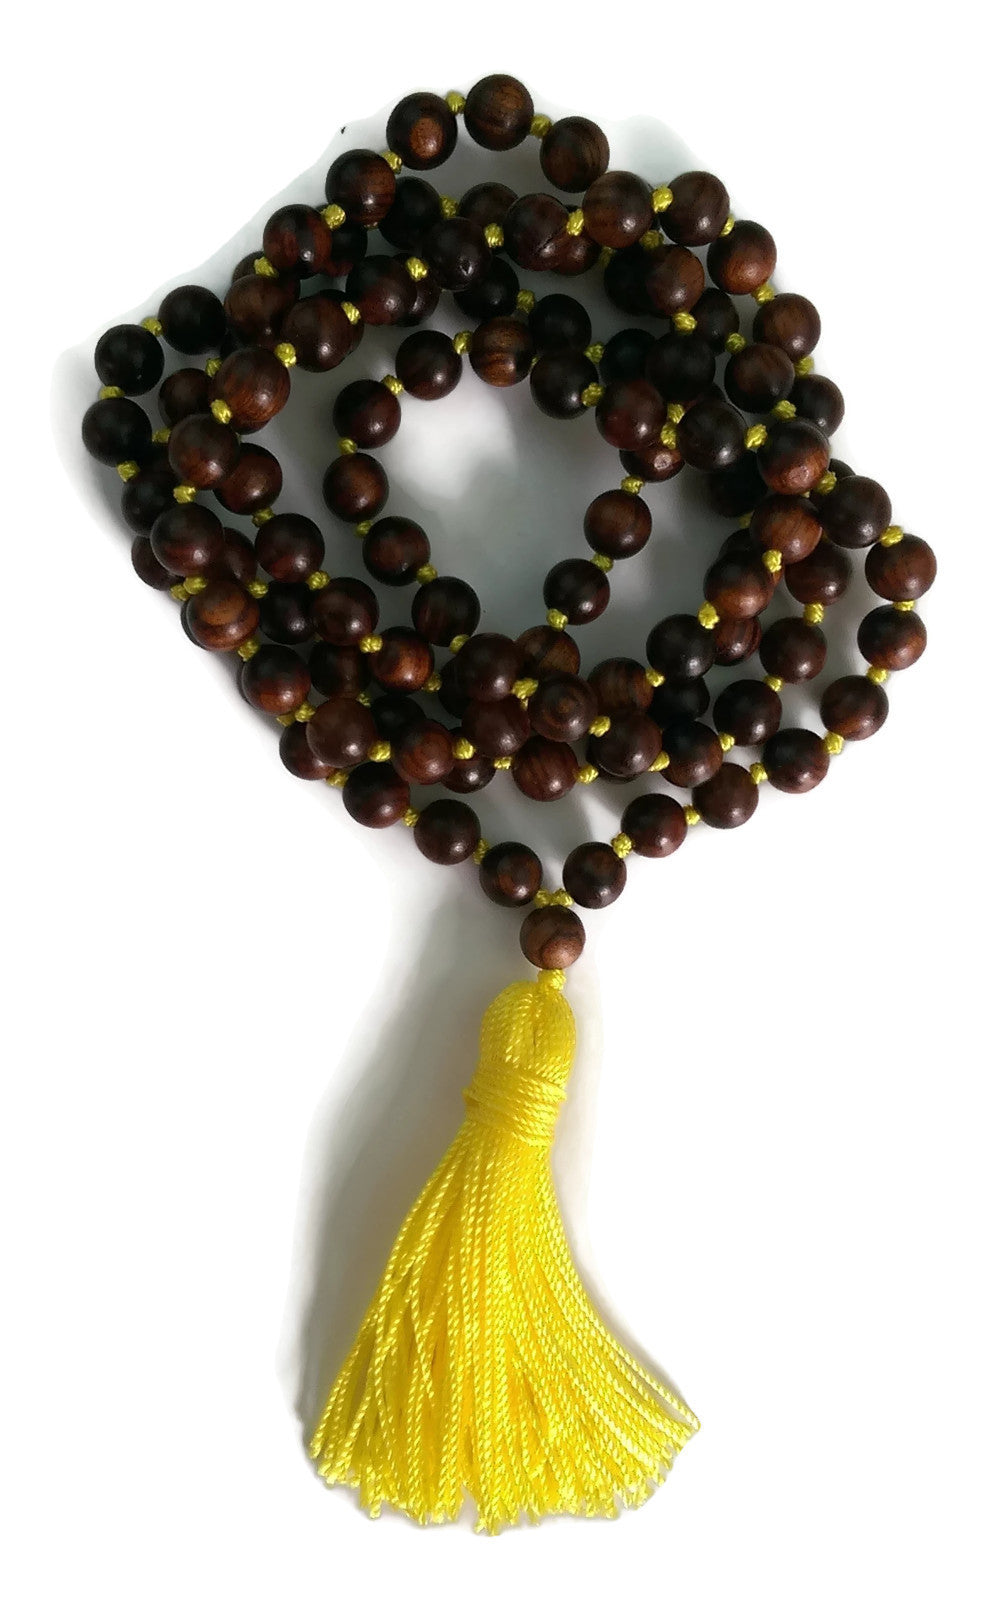 6mm or 8mm Sandalwood & Yellow String Traditional Knotted 108 Mala Necklace and Tassel | Solar Plexus Chakra